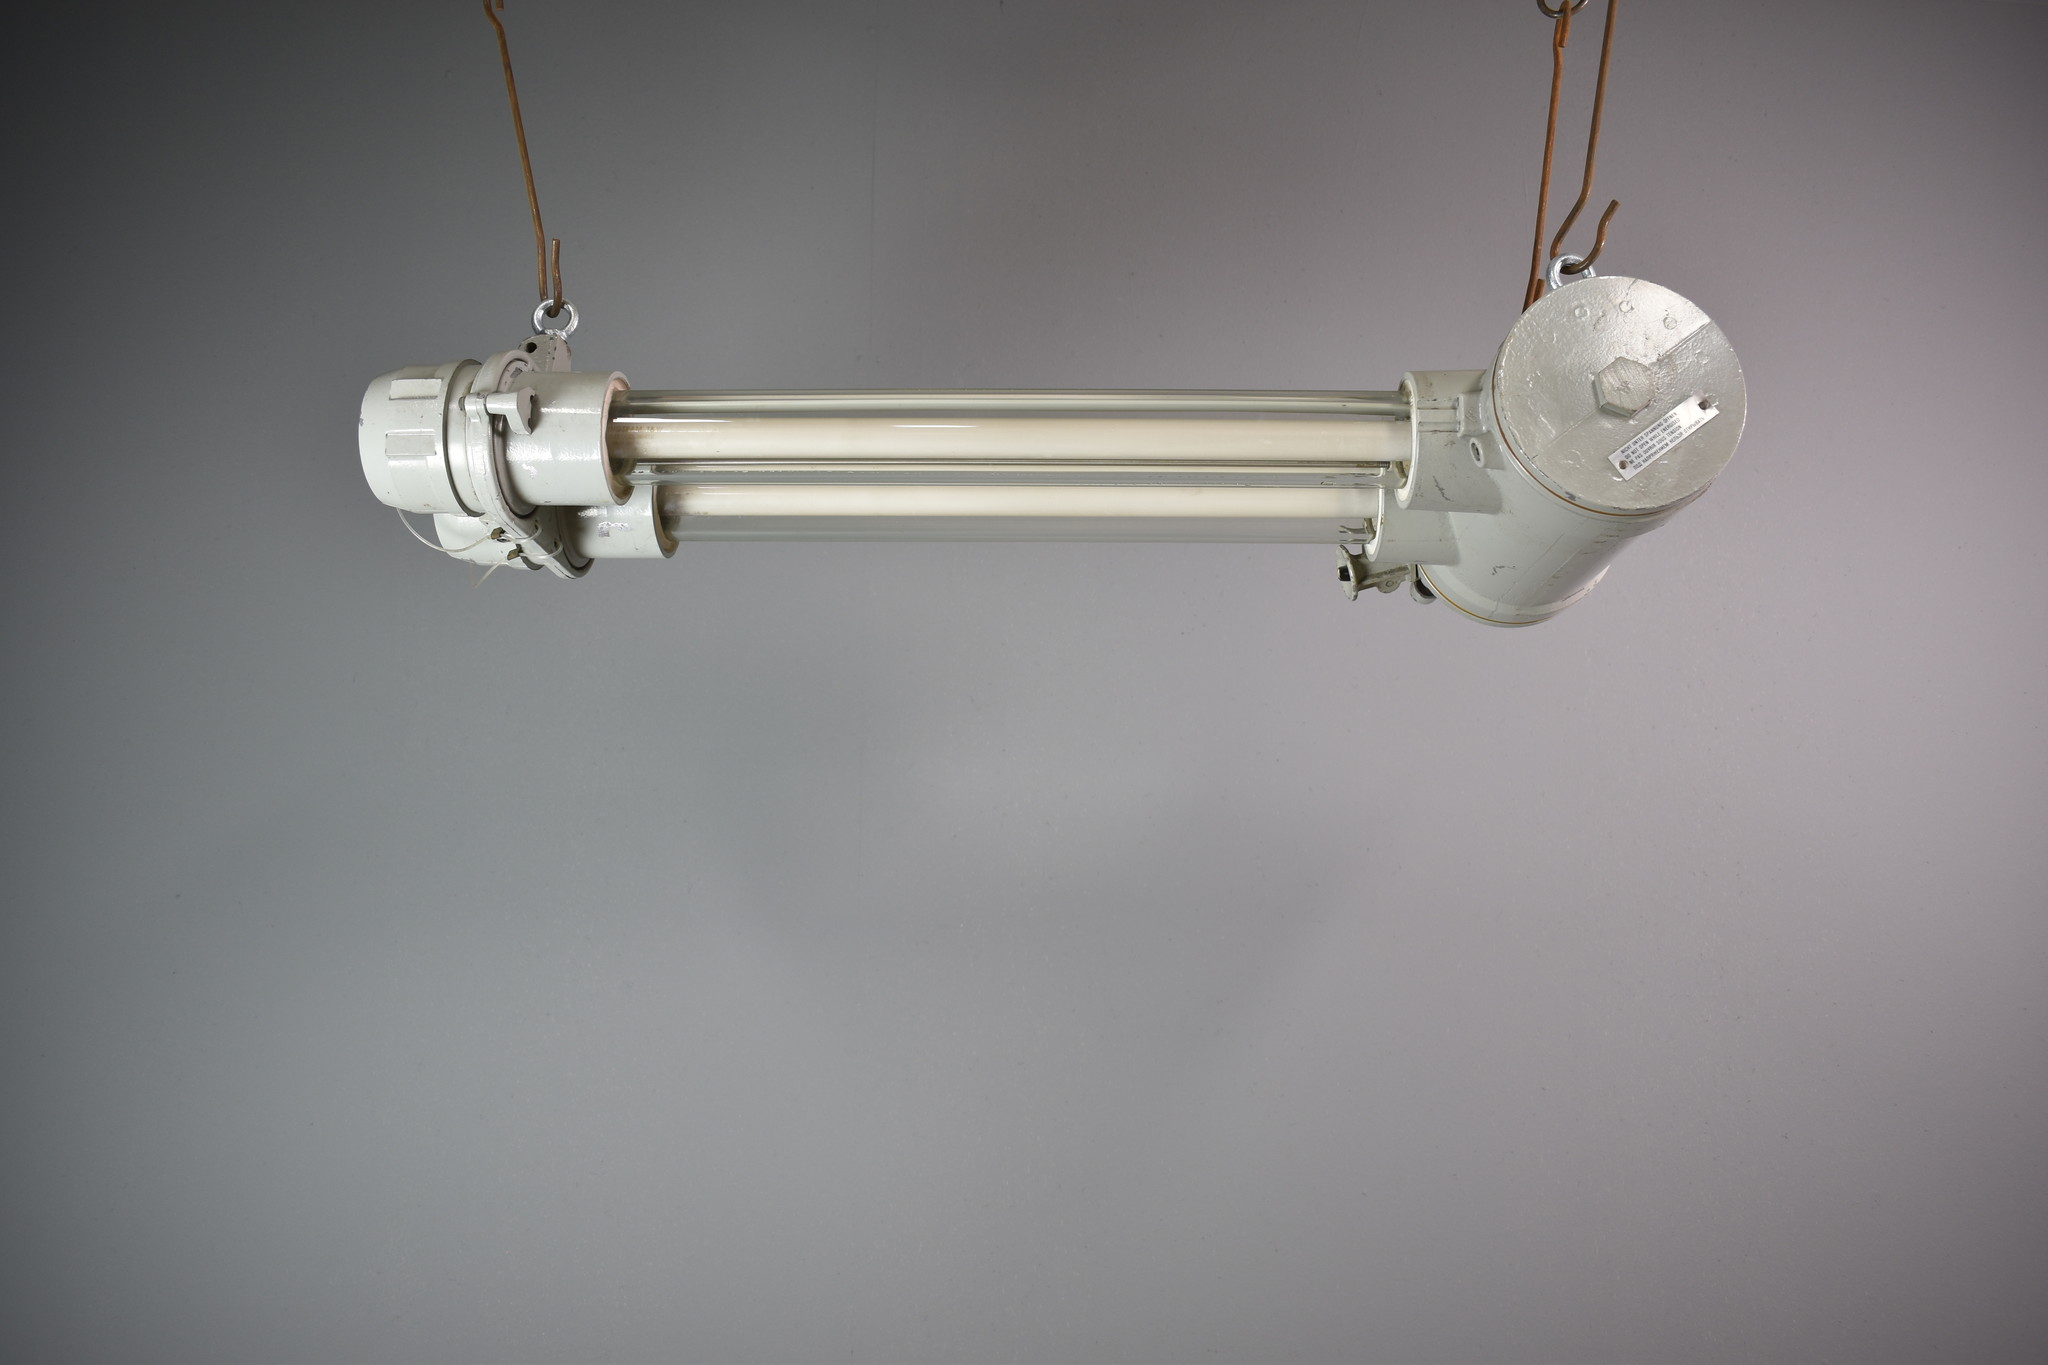 oldwood industriele tl tube lamp klein dubbel